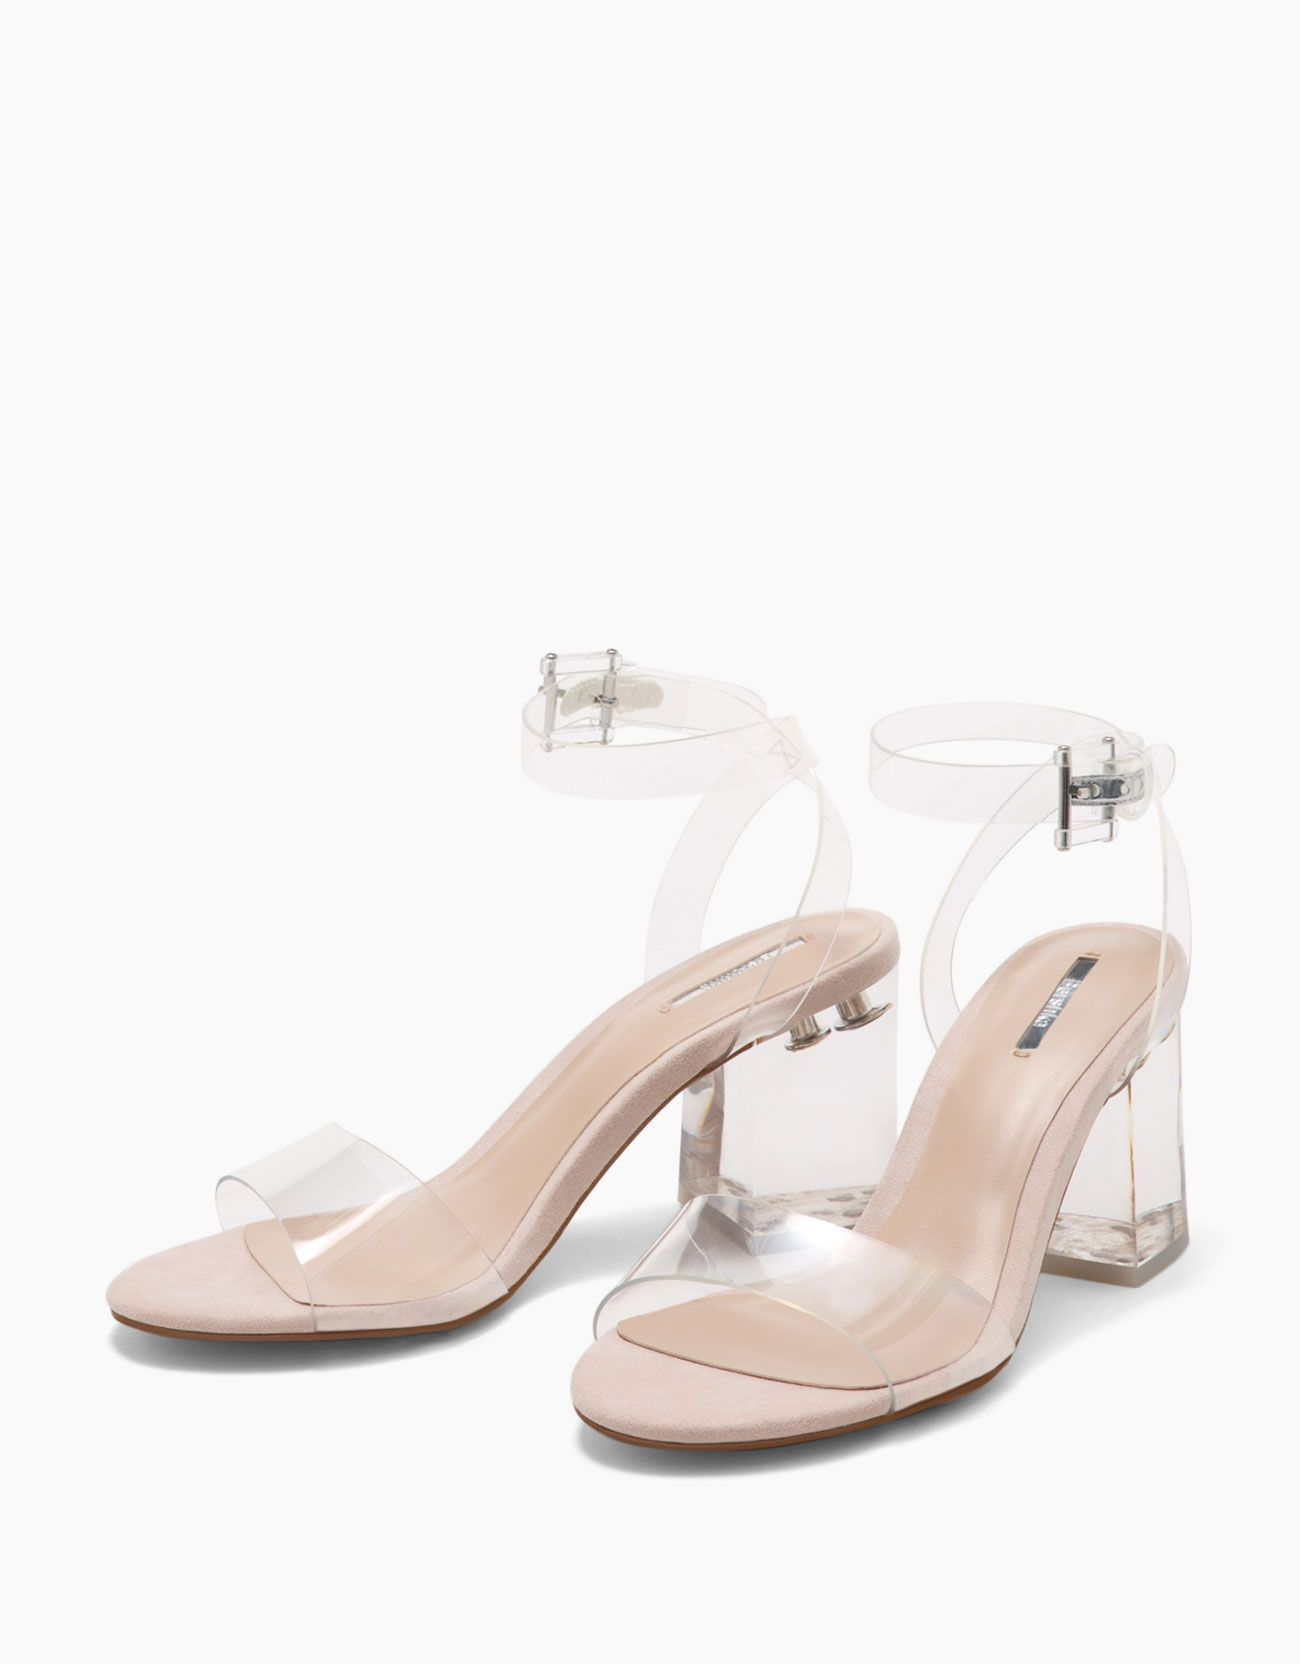 de9cc94e5e1 Transparent mid-heel sandals. Discover this and many more items in Bershka  with new products every week